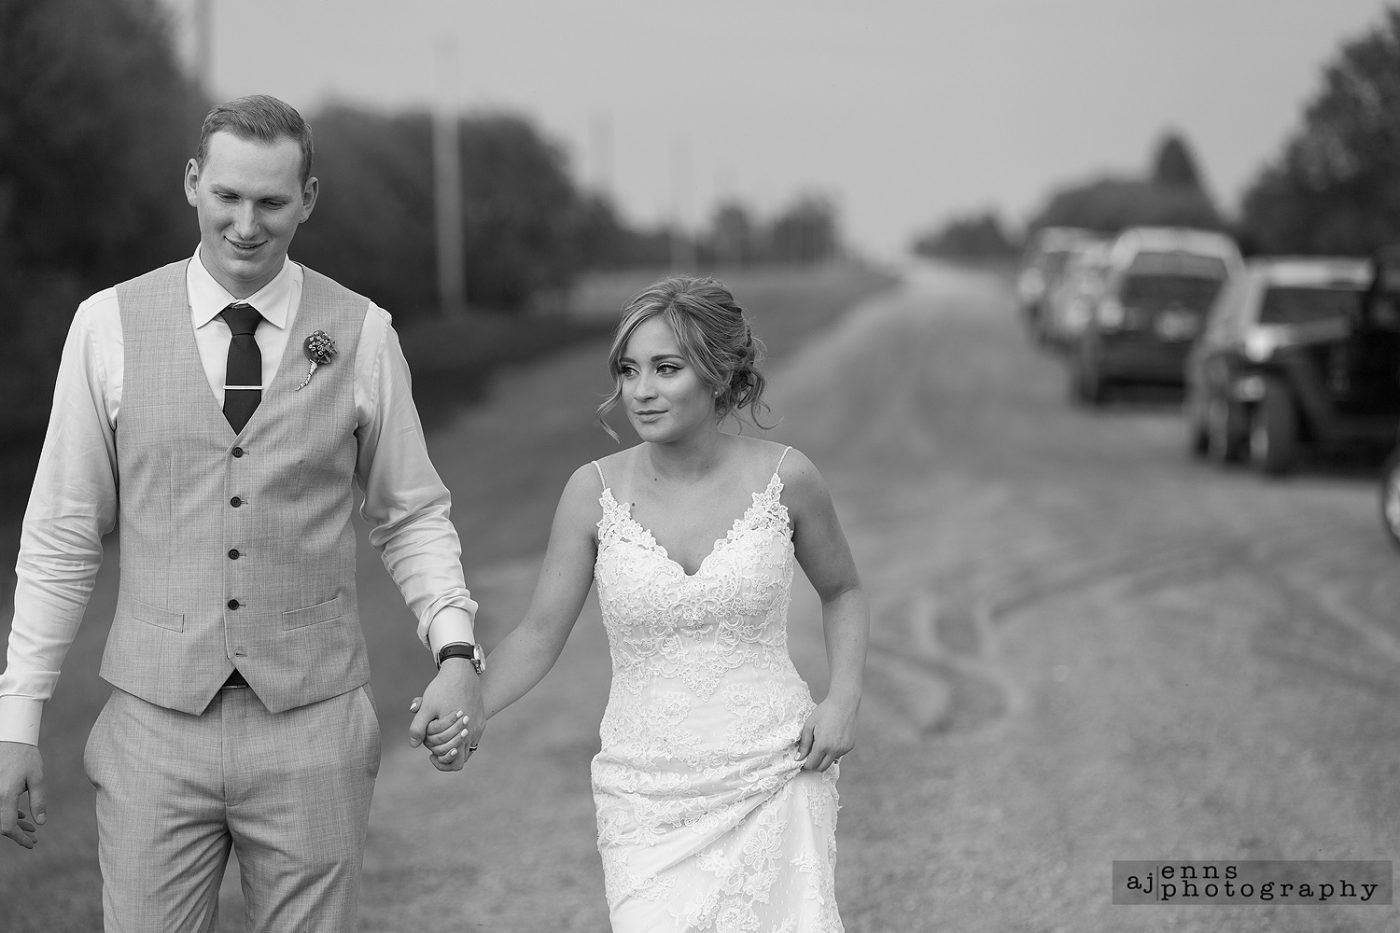 Walking down the dirt road to get away from the reception for a bit